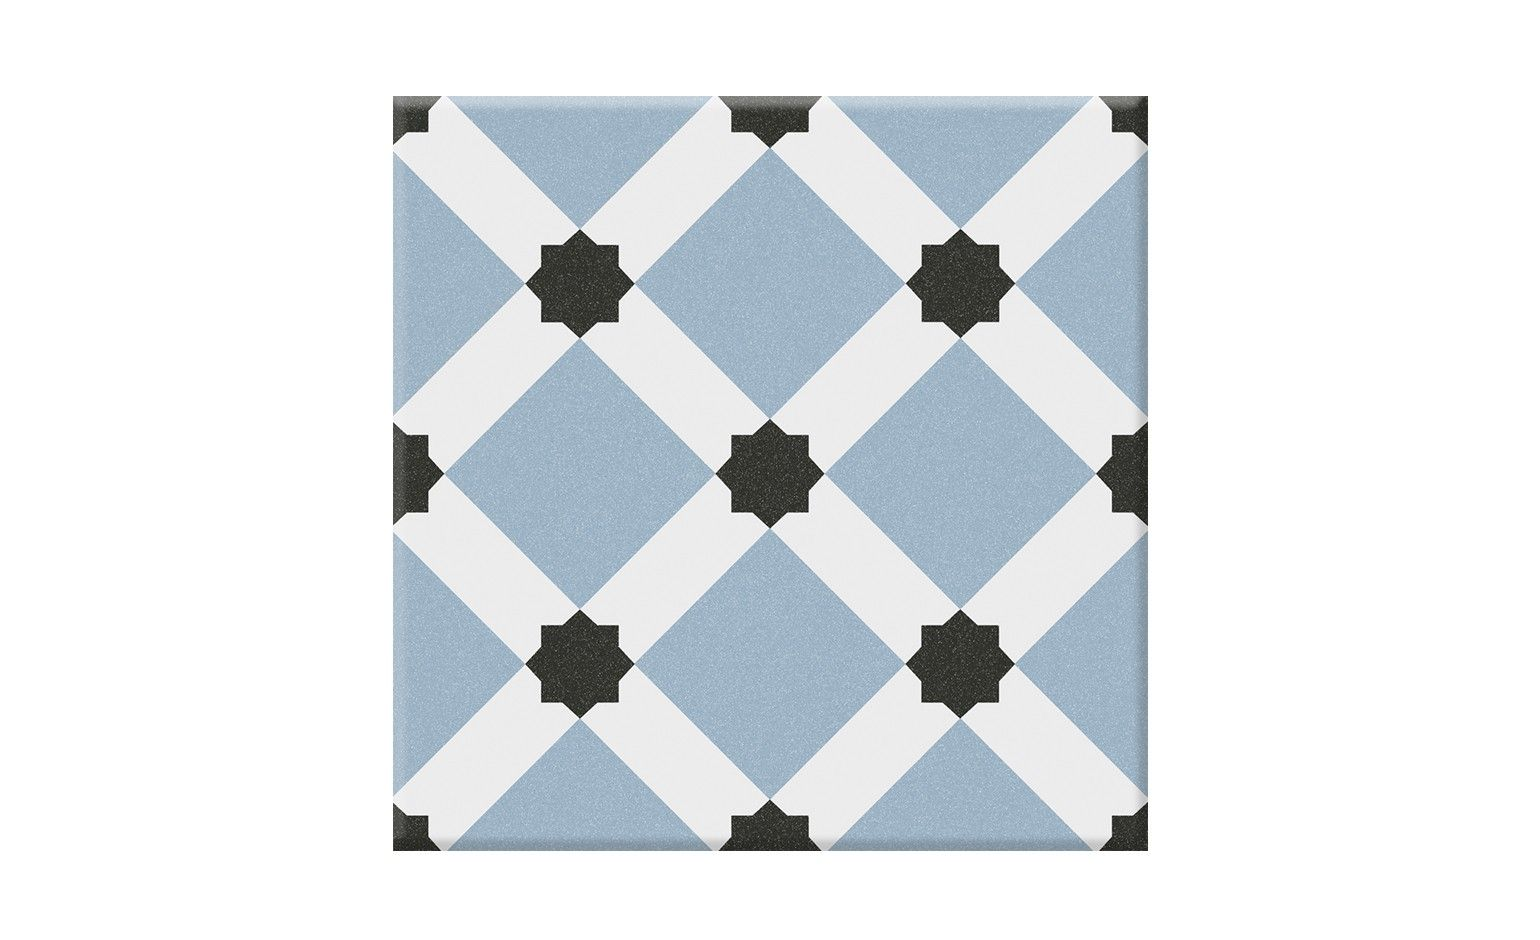 Carrelage Ciment Palau Aspect Carreaux De Ciment Multicolore Dim 20 X 20 Cm Carrelages Geometriques Carreau De Ciment Carrelage Ciment